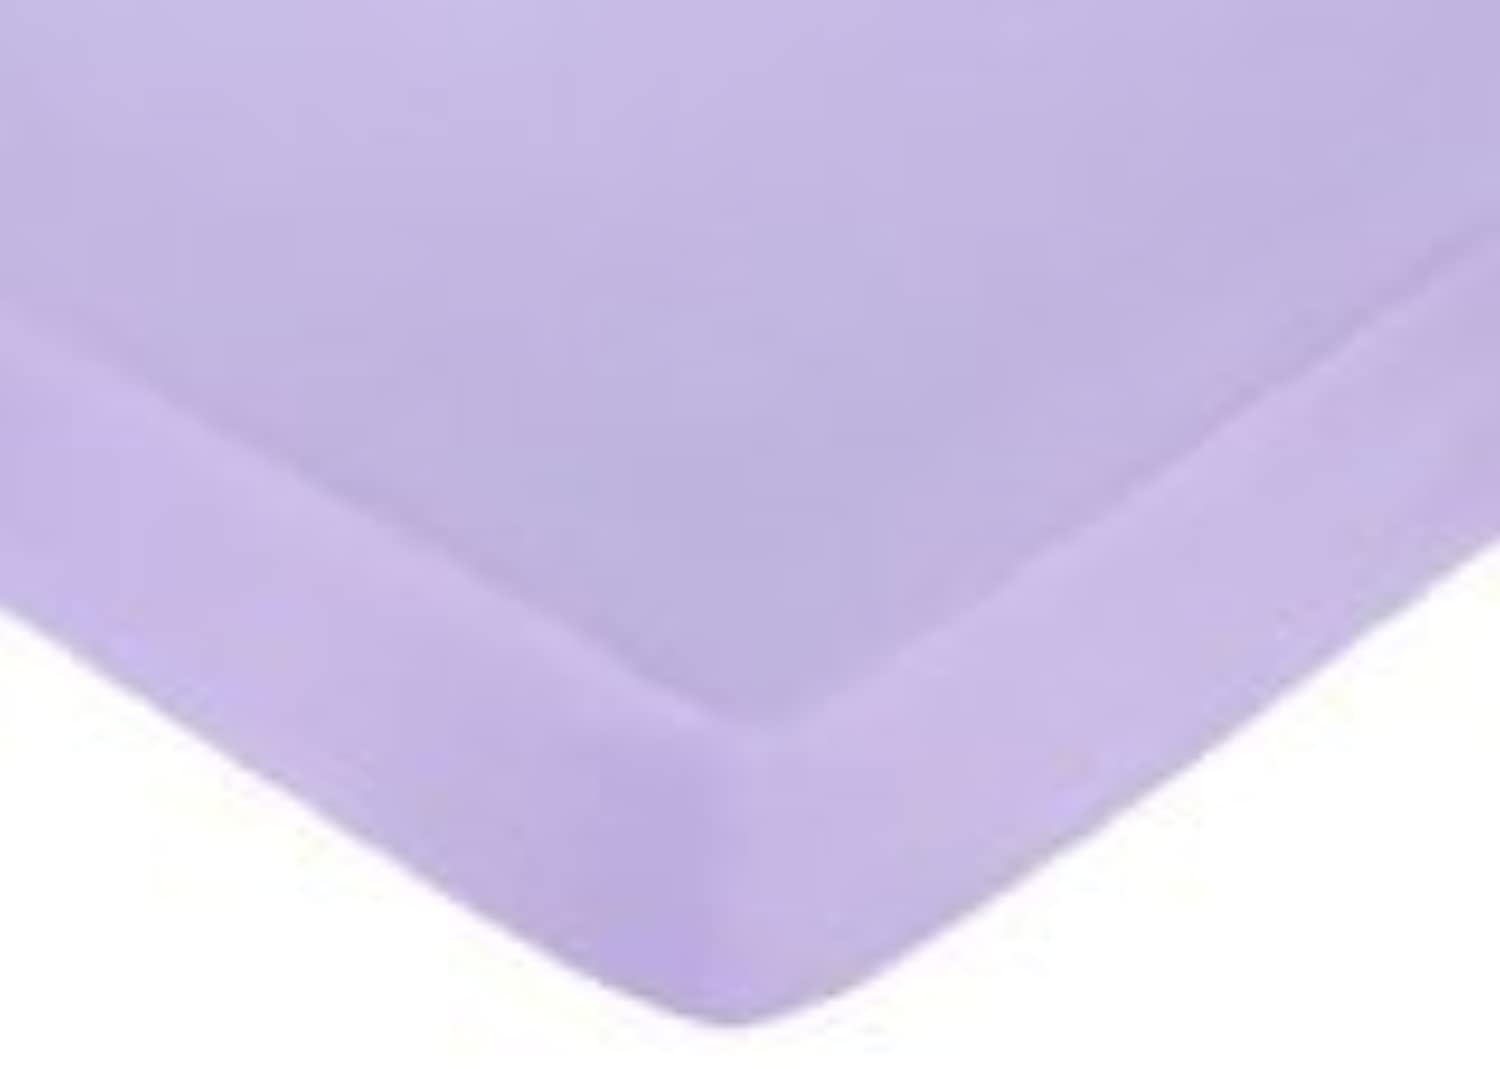 Pink and Purple Butterfly Fitted Crib Sheet for Baby and Toddler Bedding Sets by Sweet Jojo Designs - Solid Purple [並行輸入品]